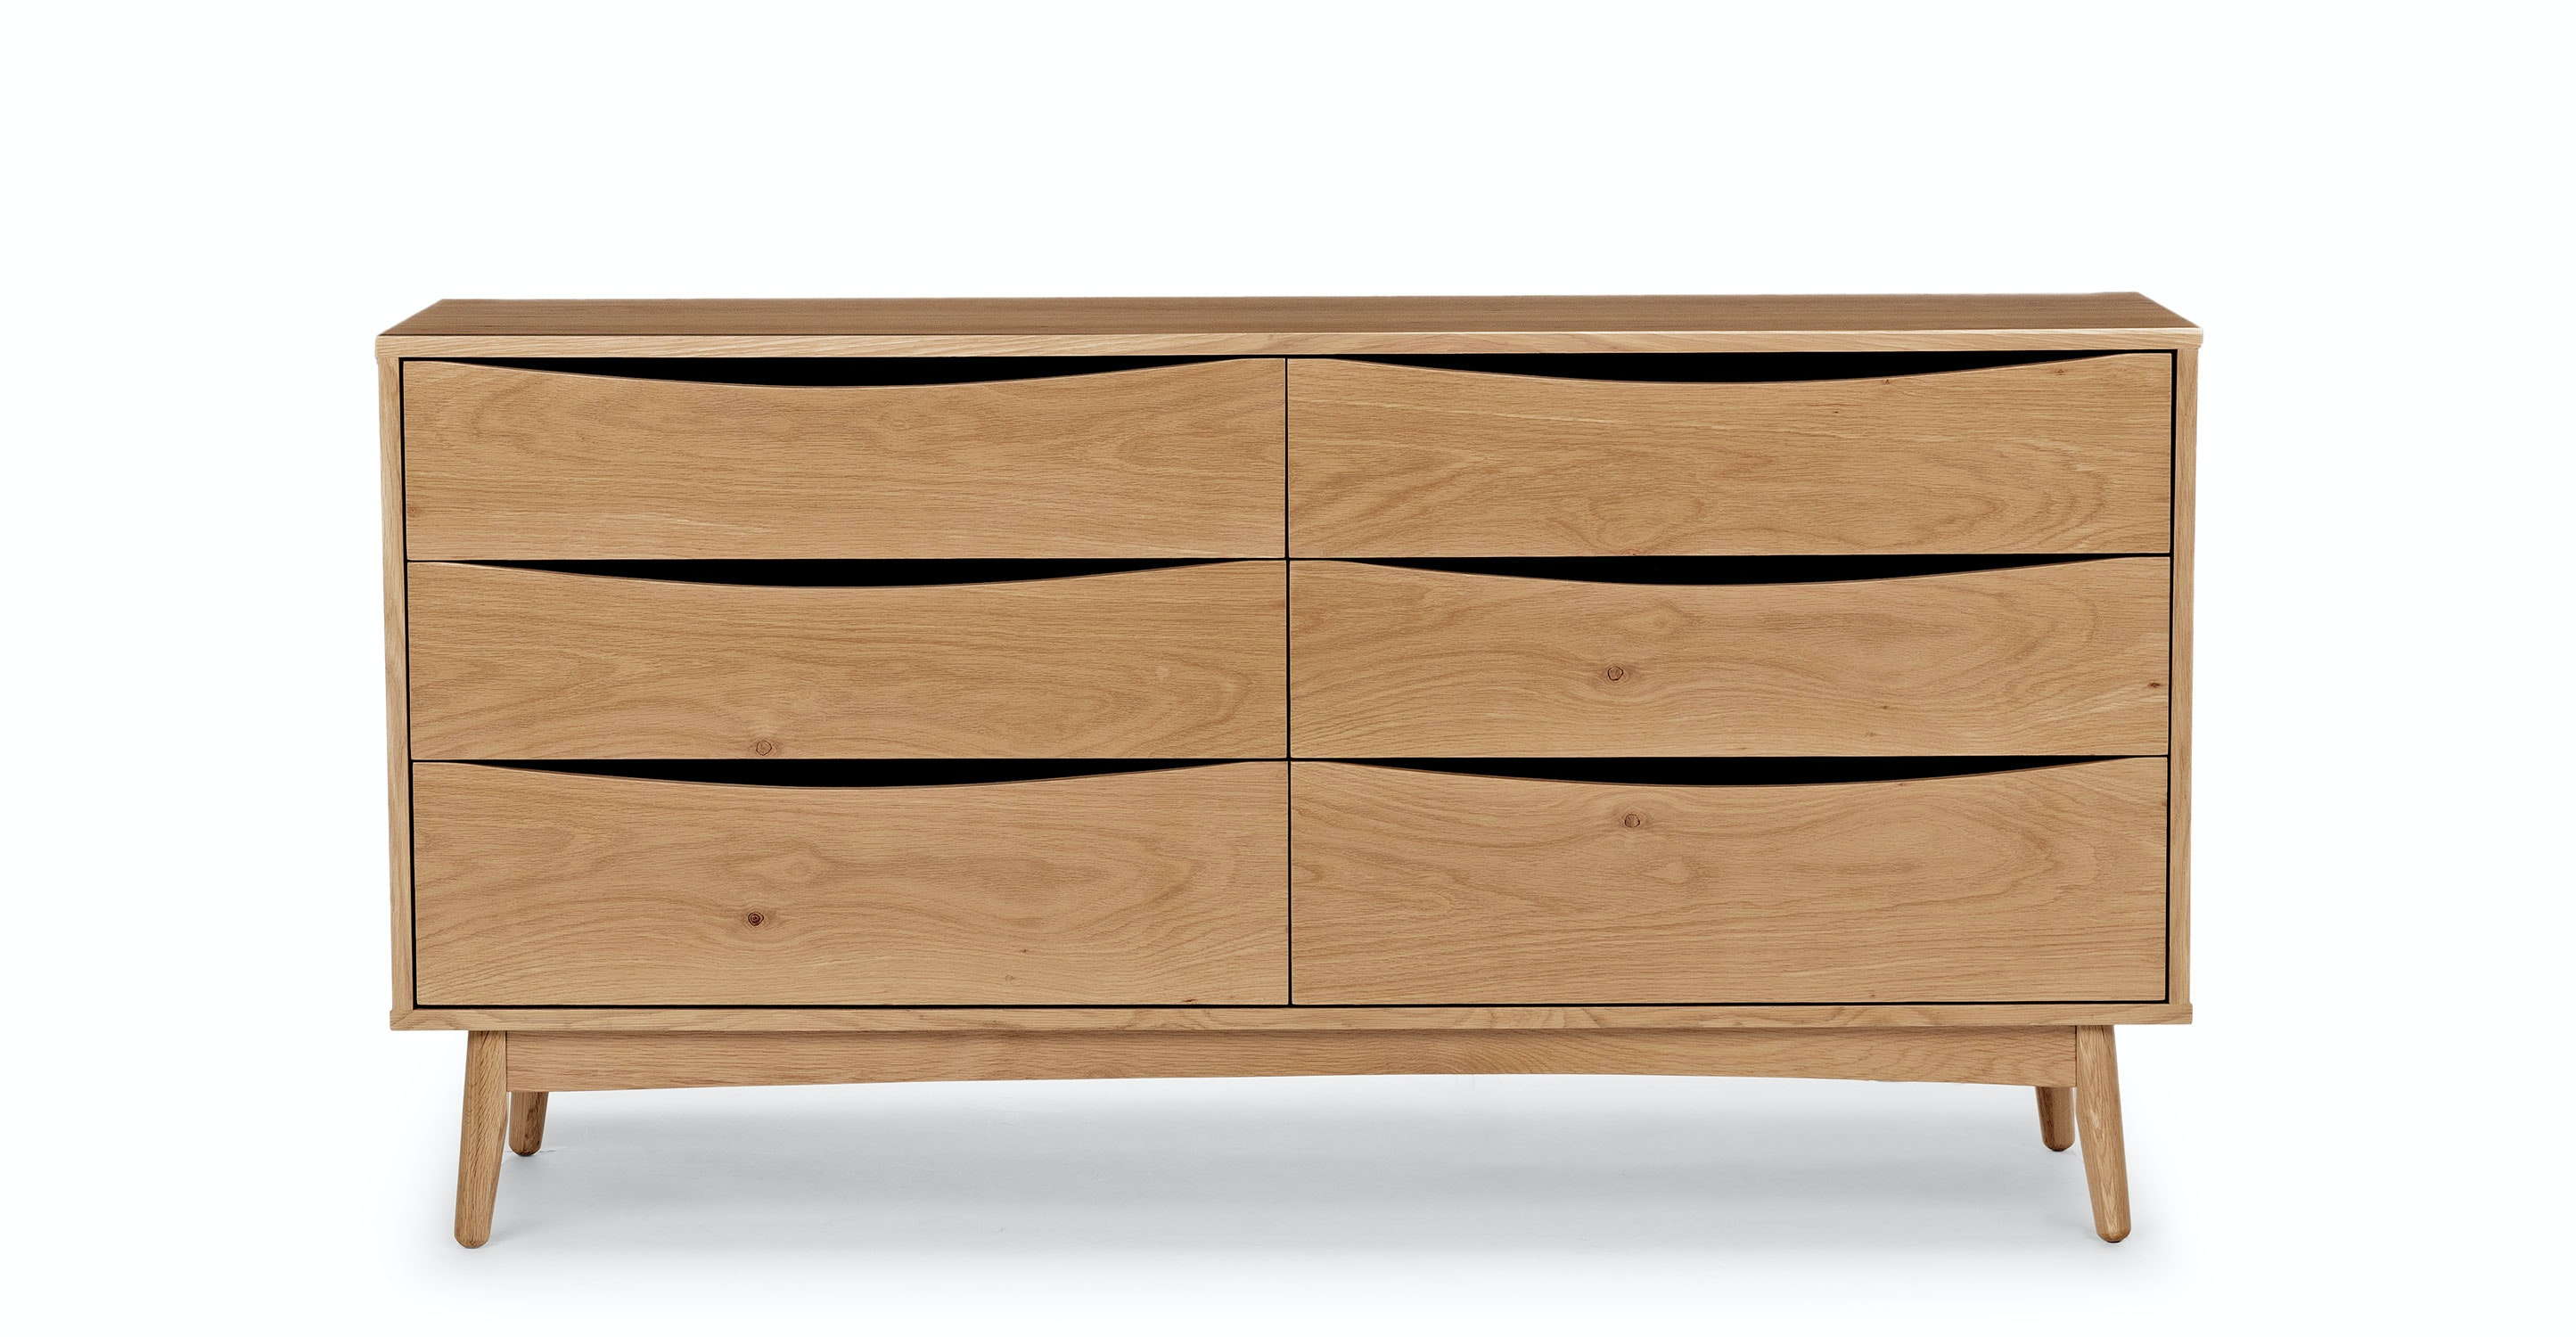 Shop Culla Oak 6 Drawer Double Dresser from Article on Openhaus